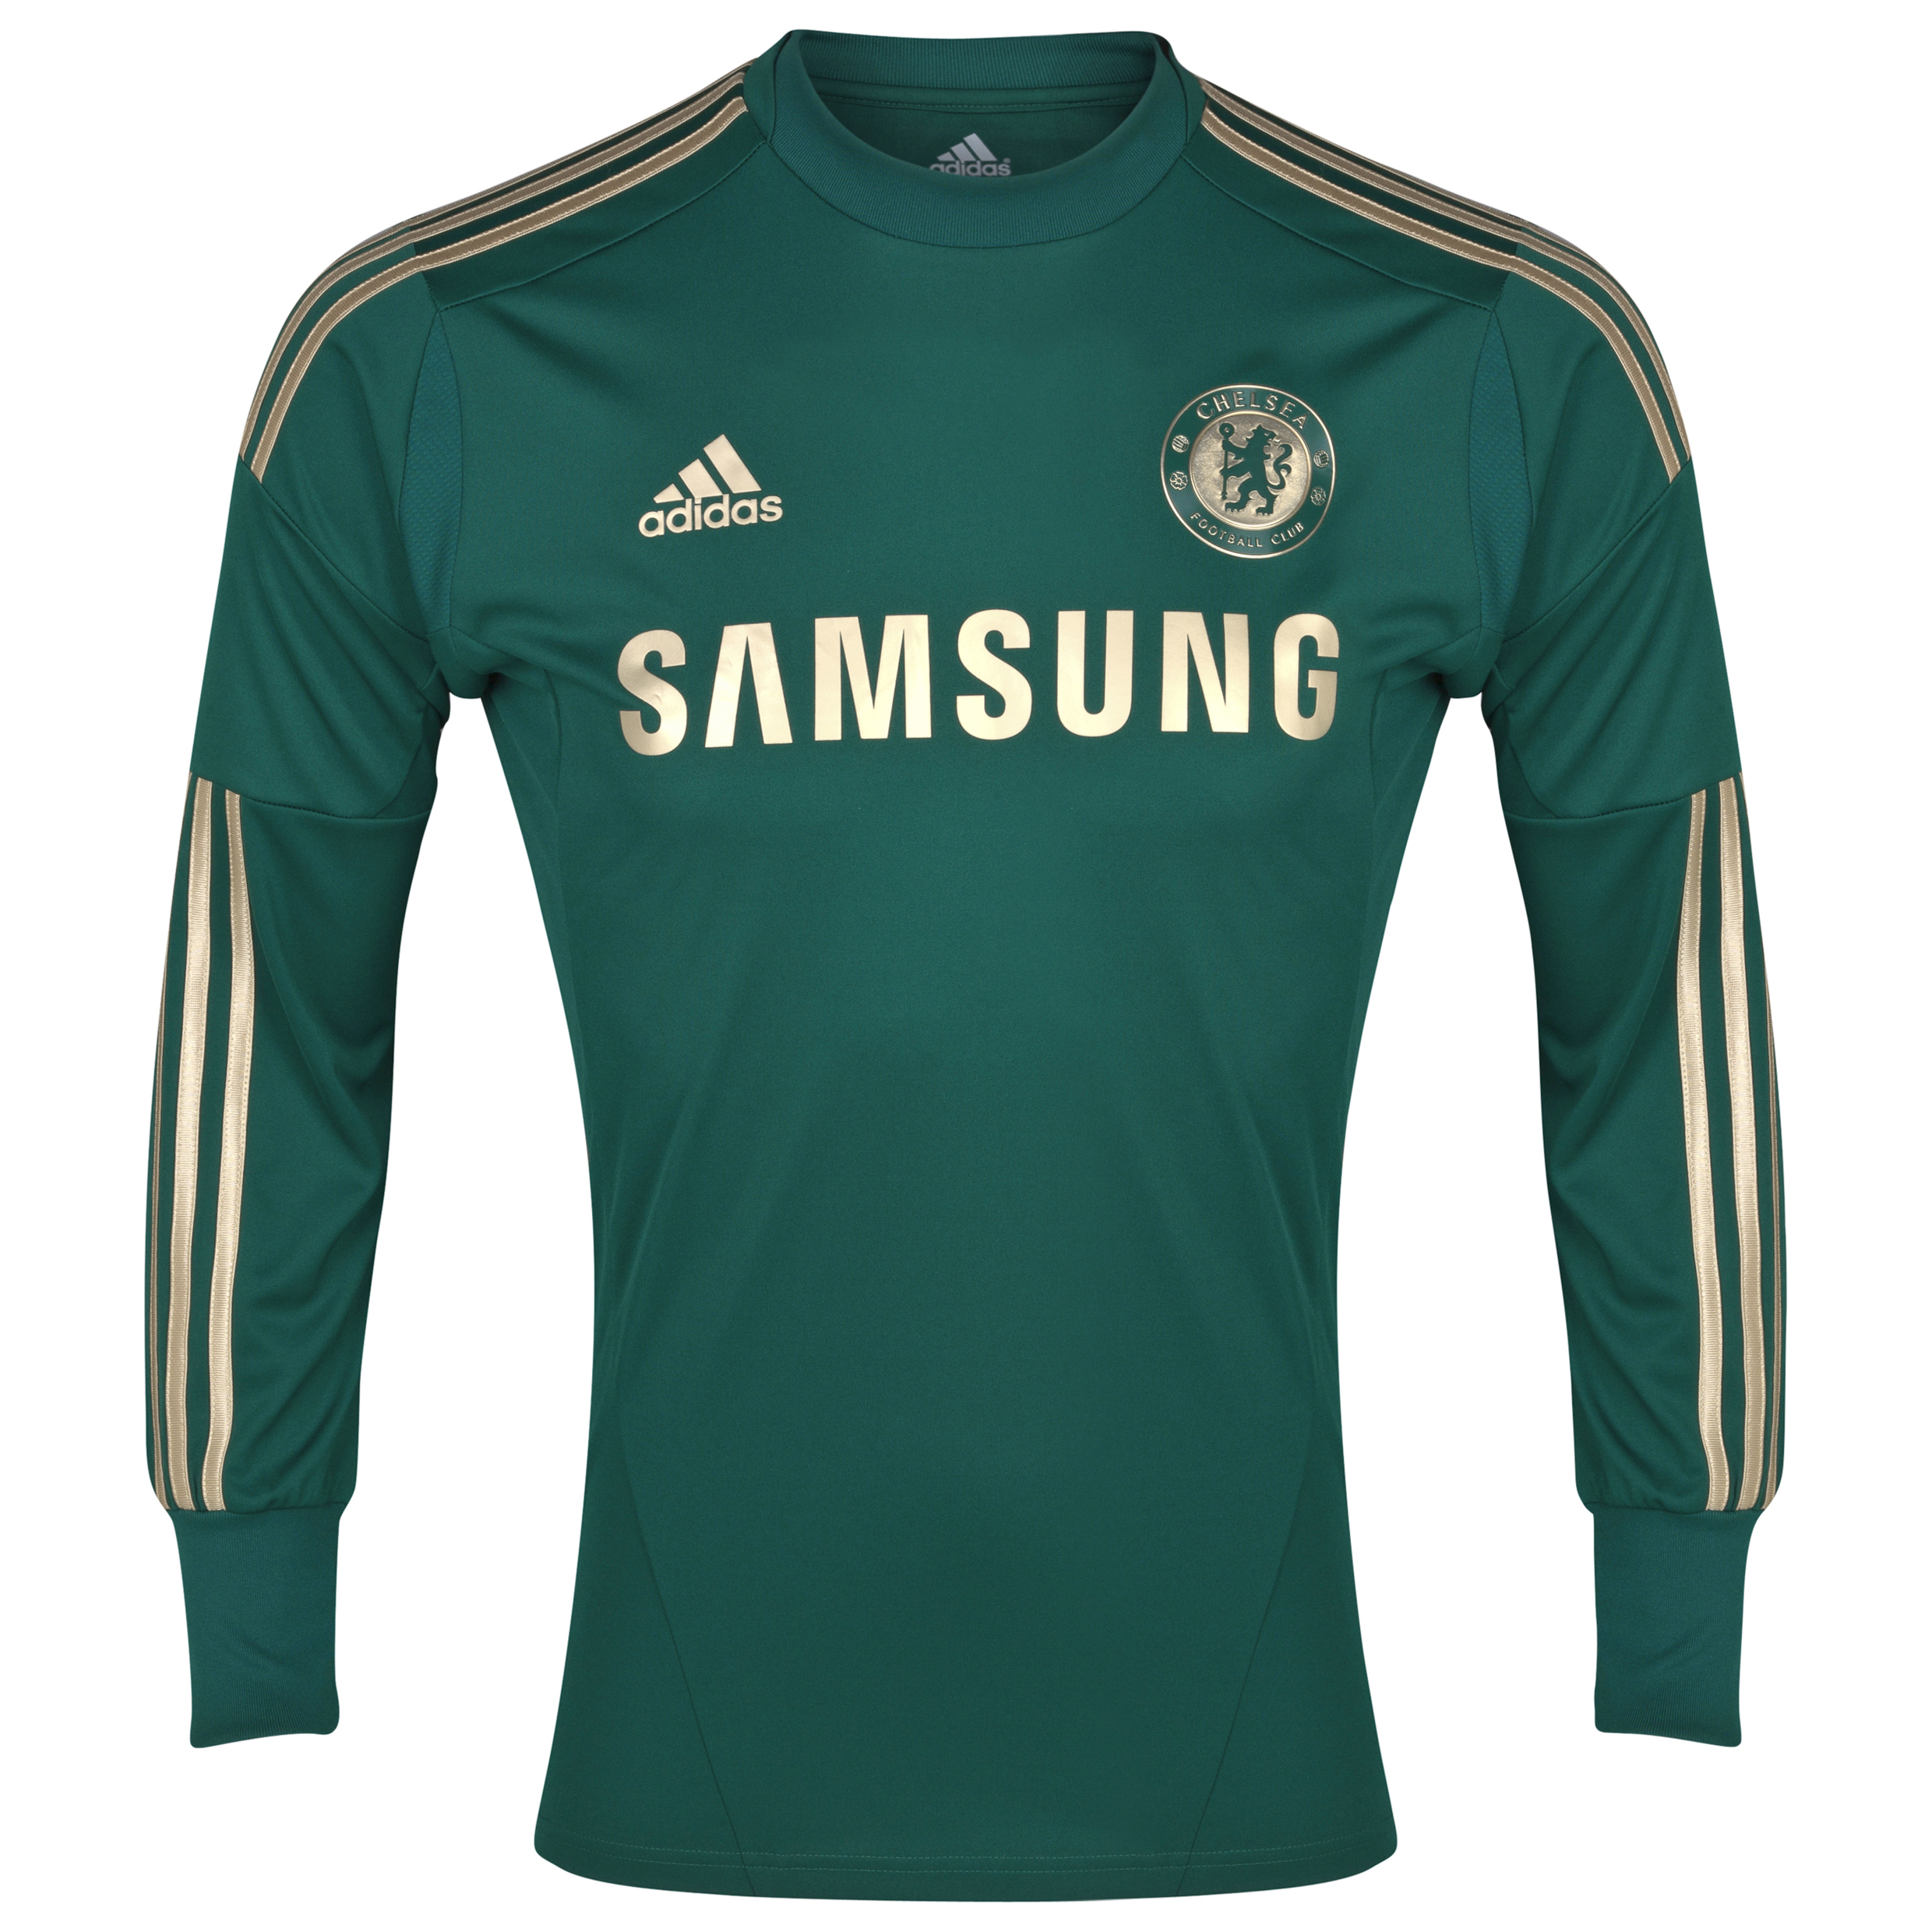 Chelsea Home Goalkeeper Shirt 2012/13